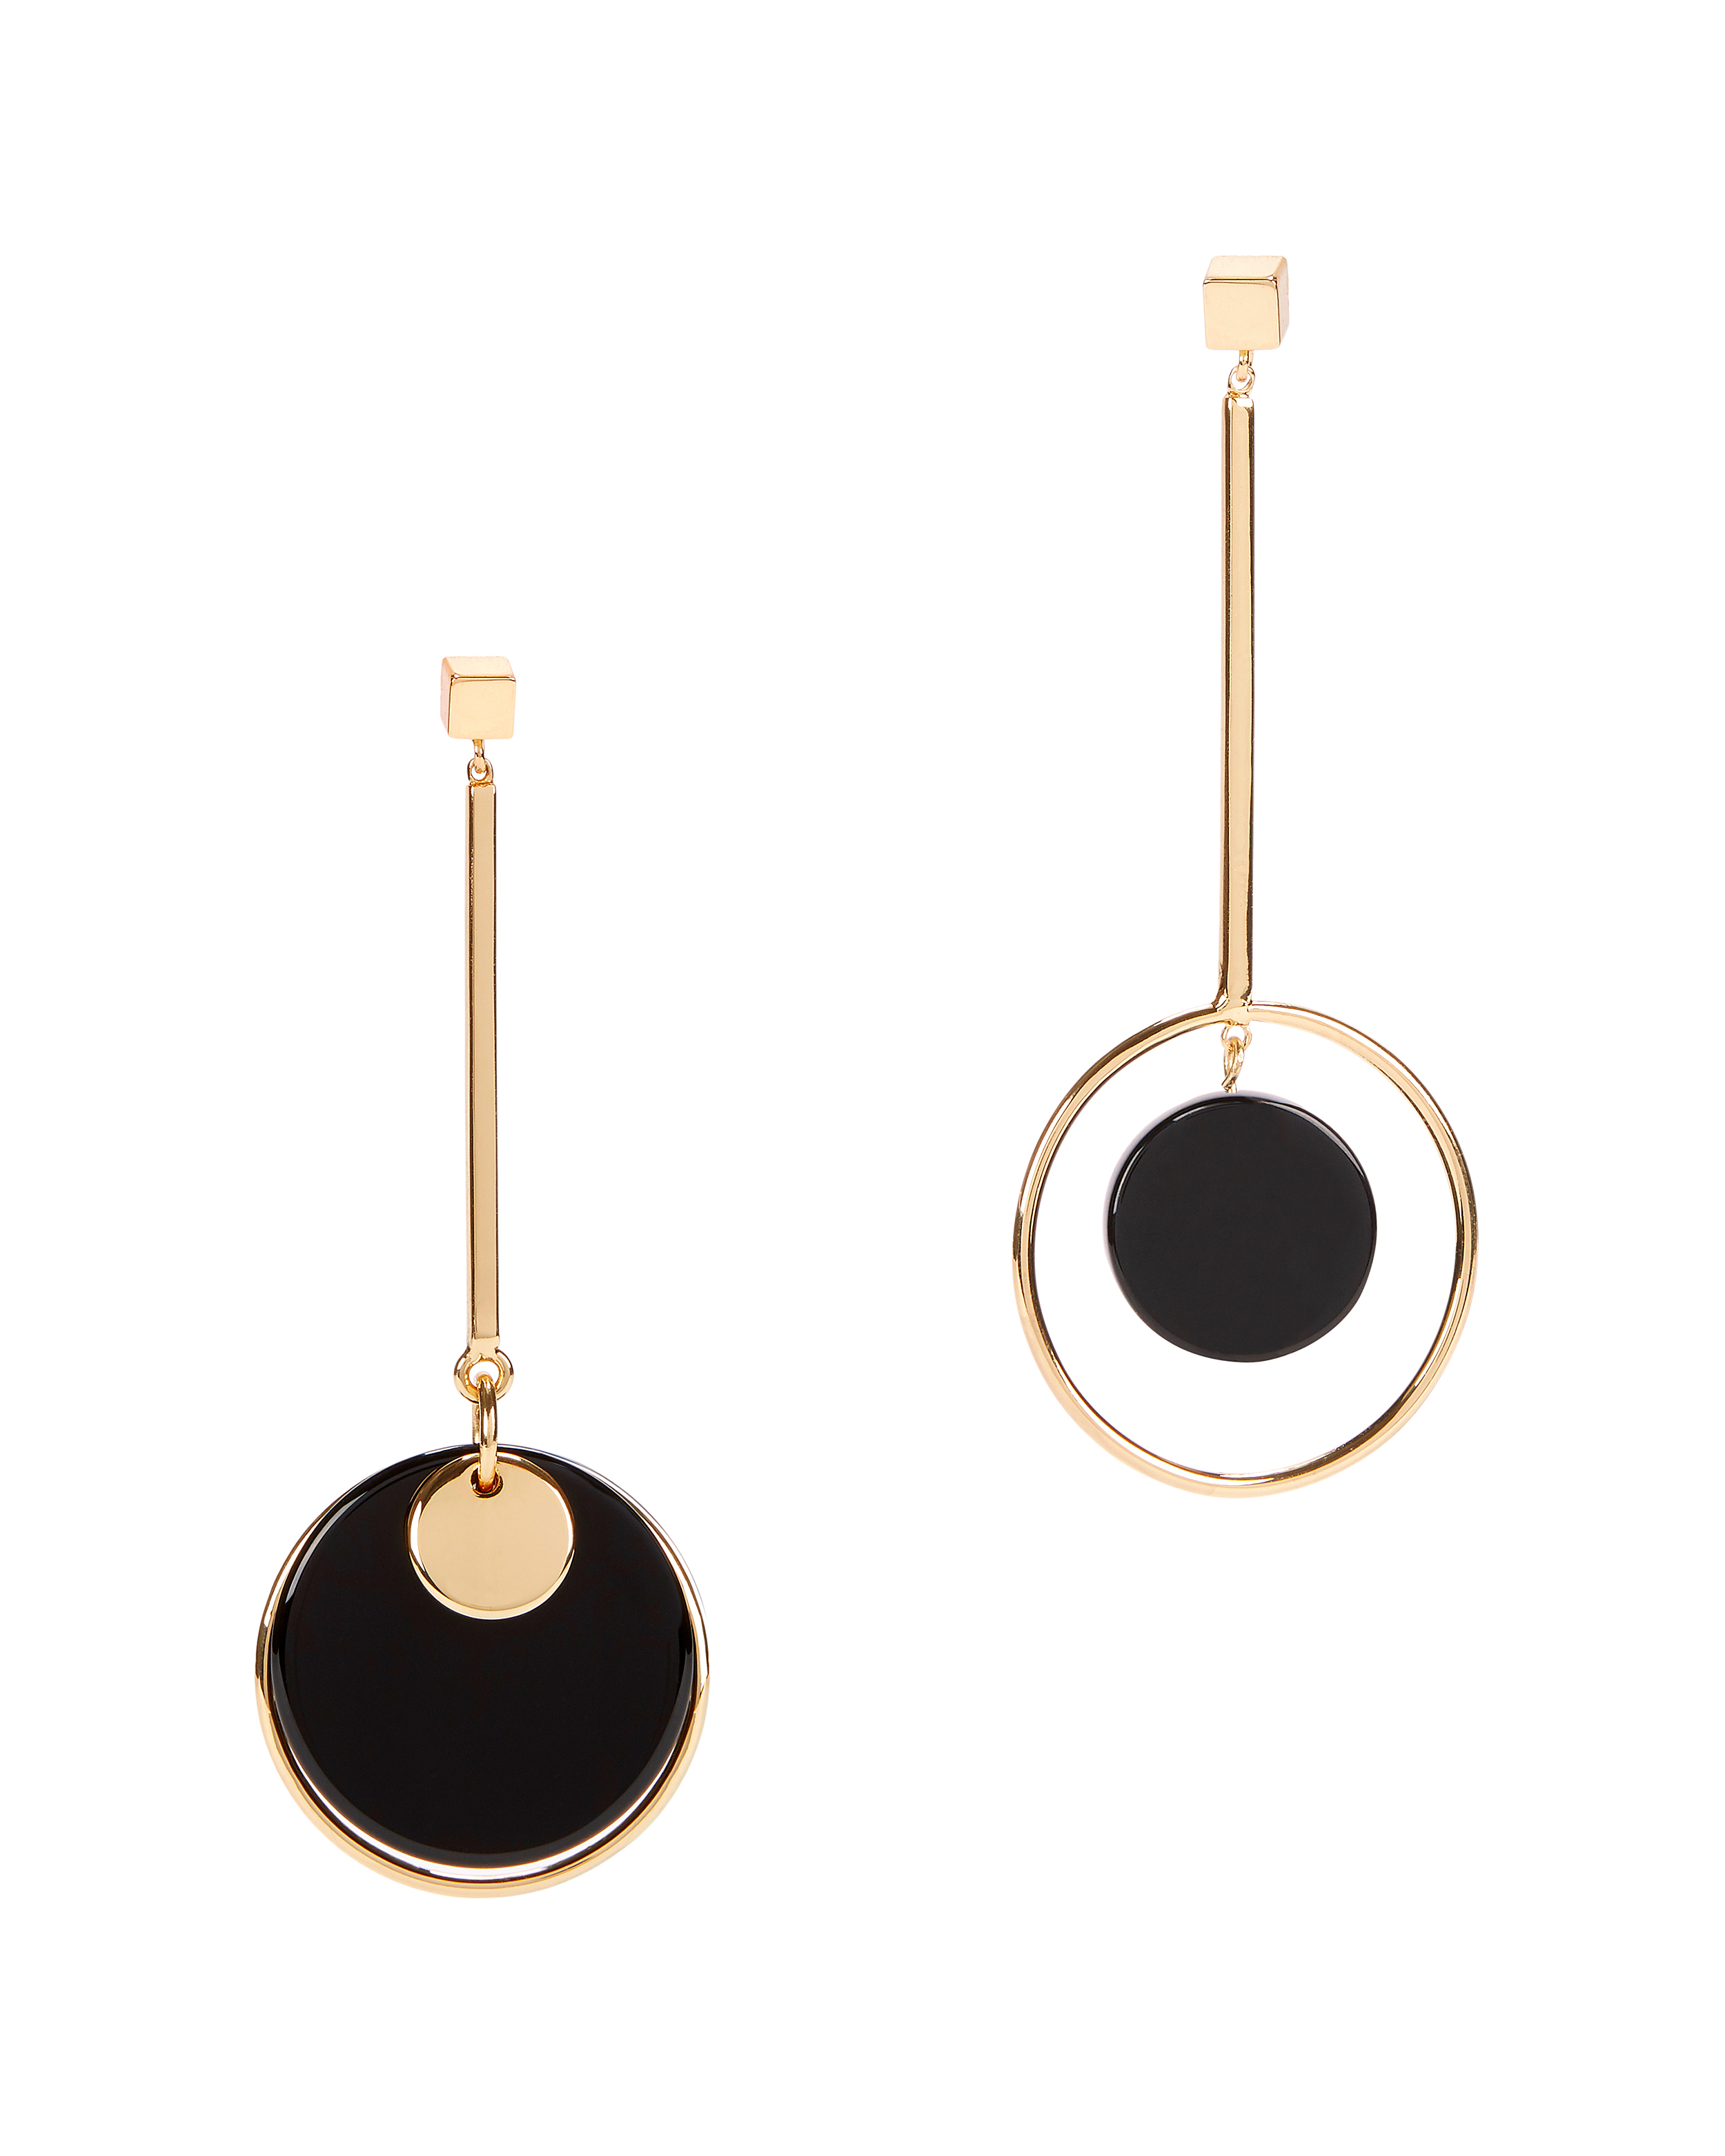 delta elegant studs earrings products jules stud mismatch smith plated mismatched